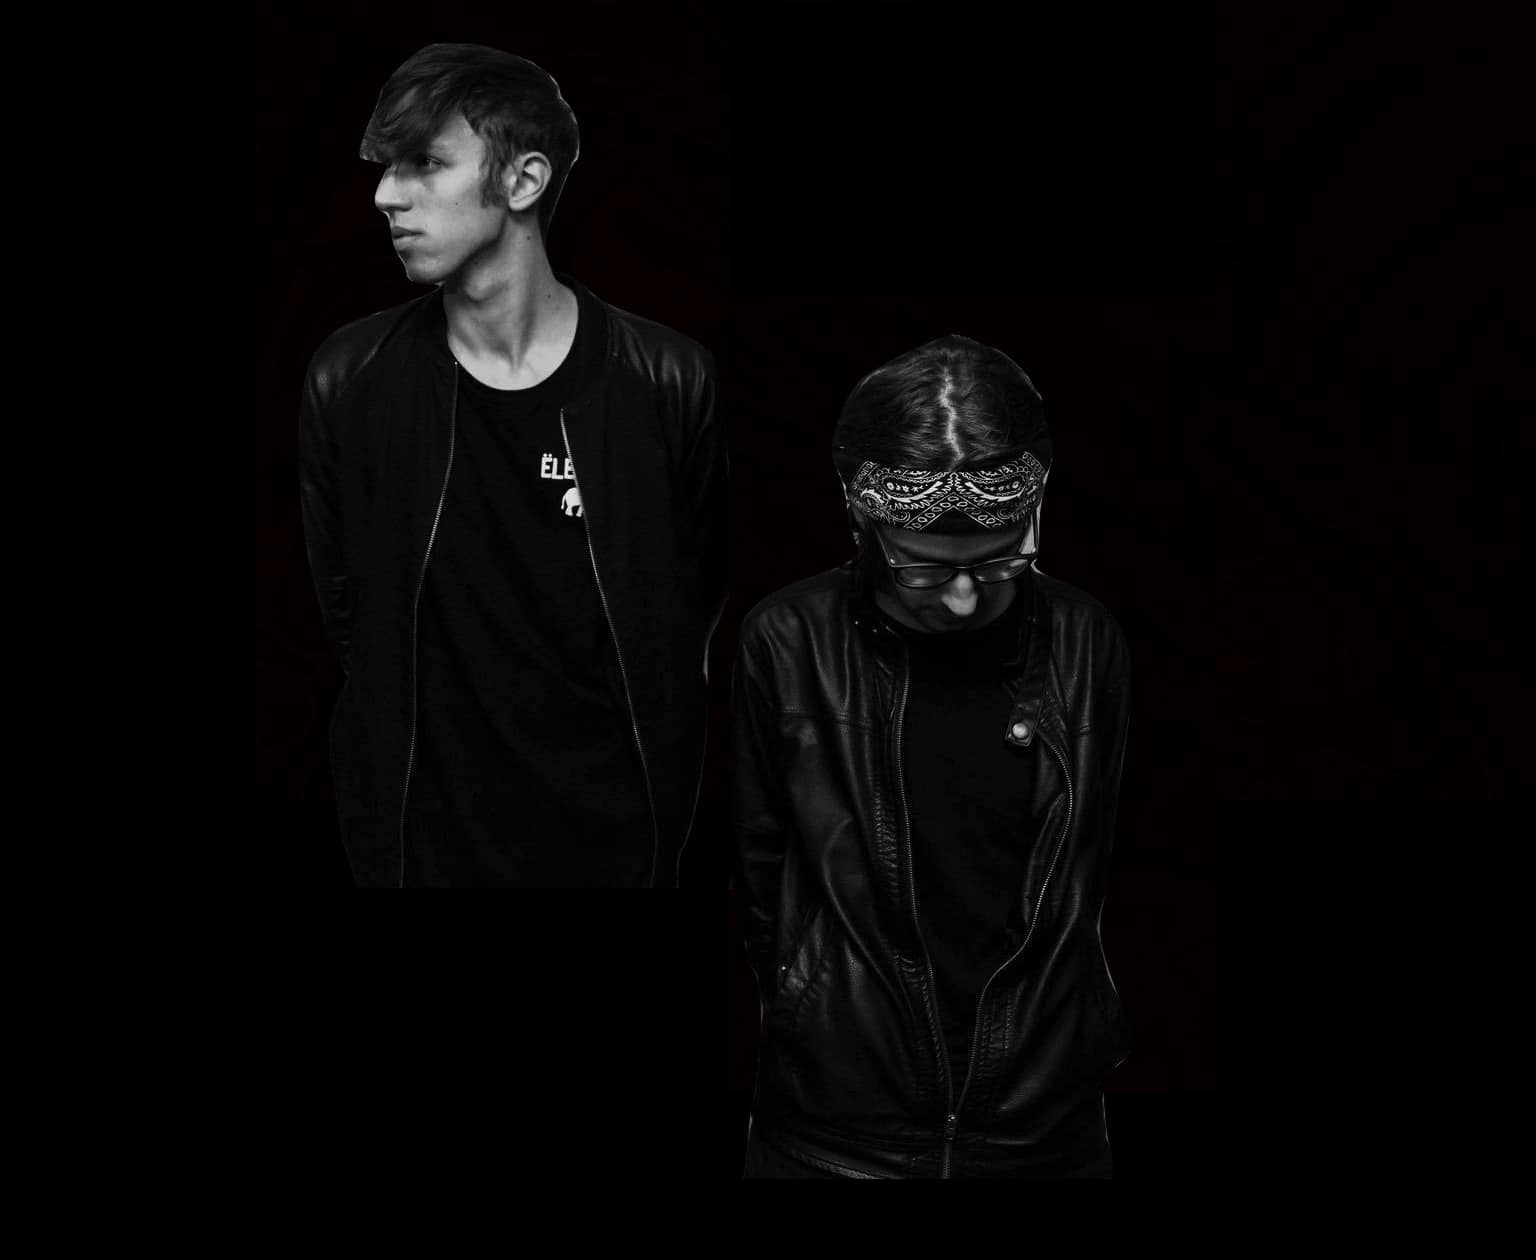 Havoc & Lawn bring their dark and groovy sound to Code Black with Anybody / Plac EP